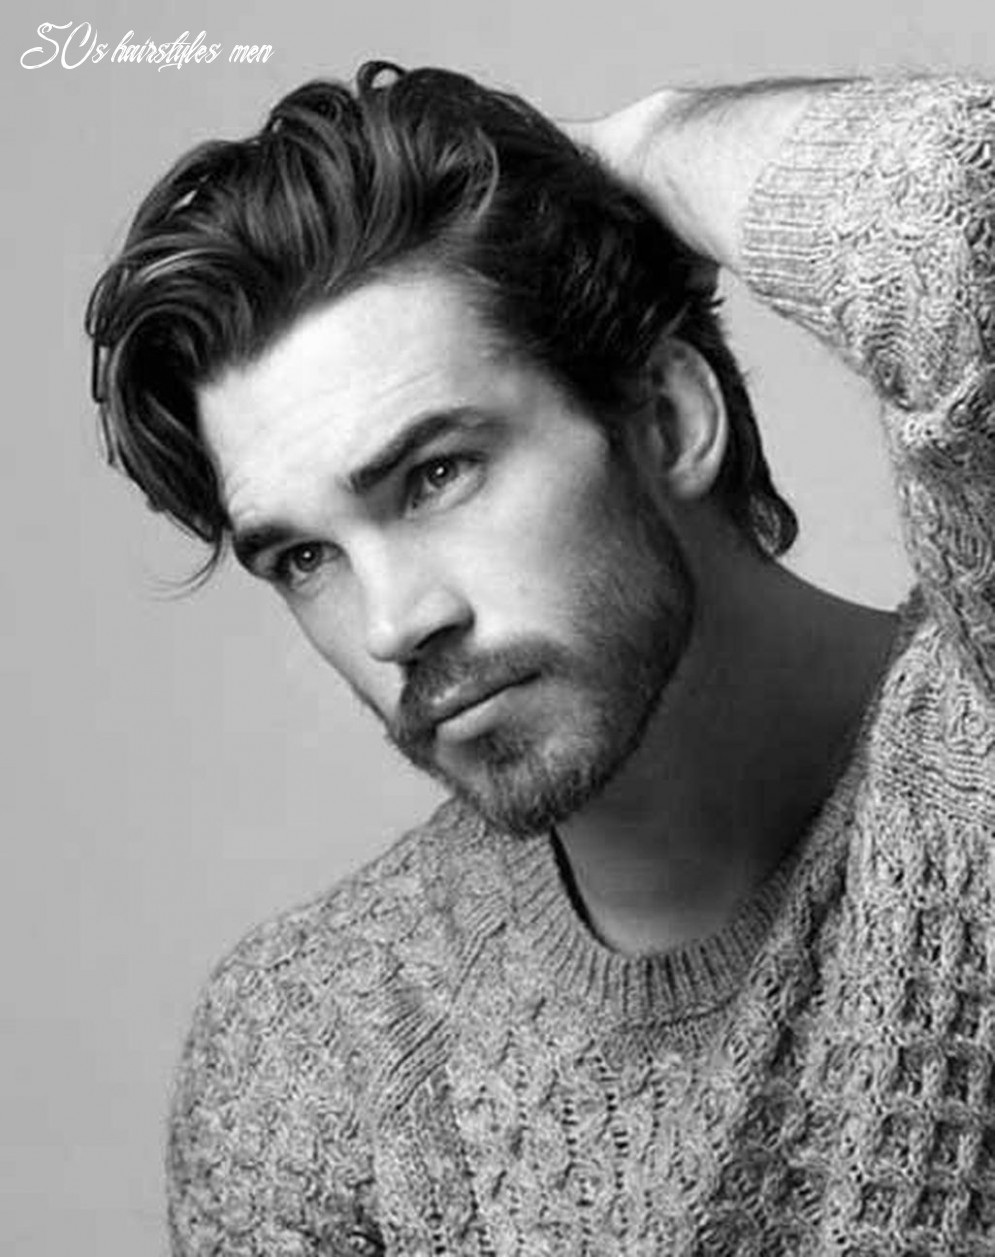 Cool 8 awesome 8s hairstyles men ideas more at https://www